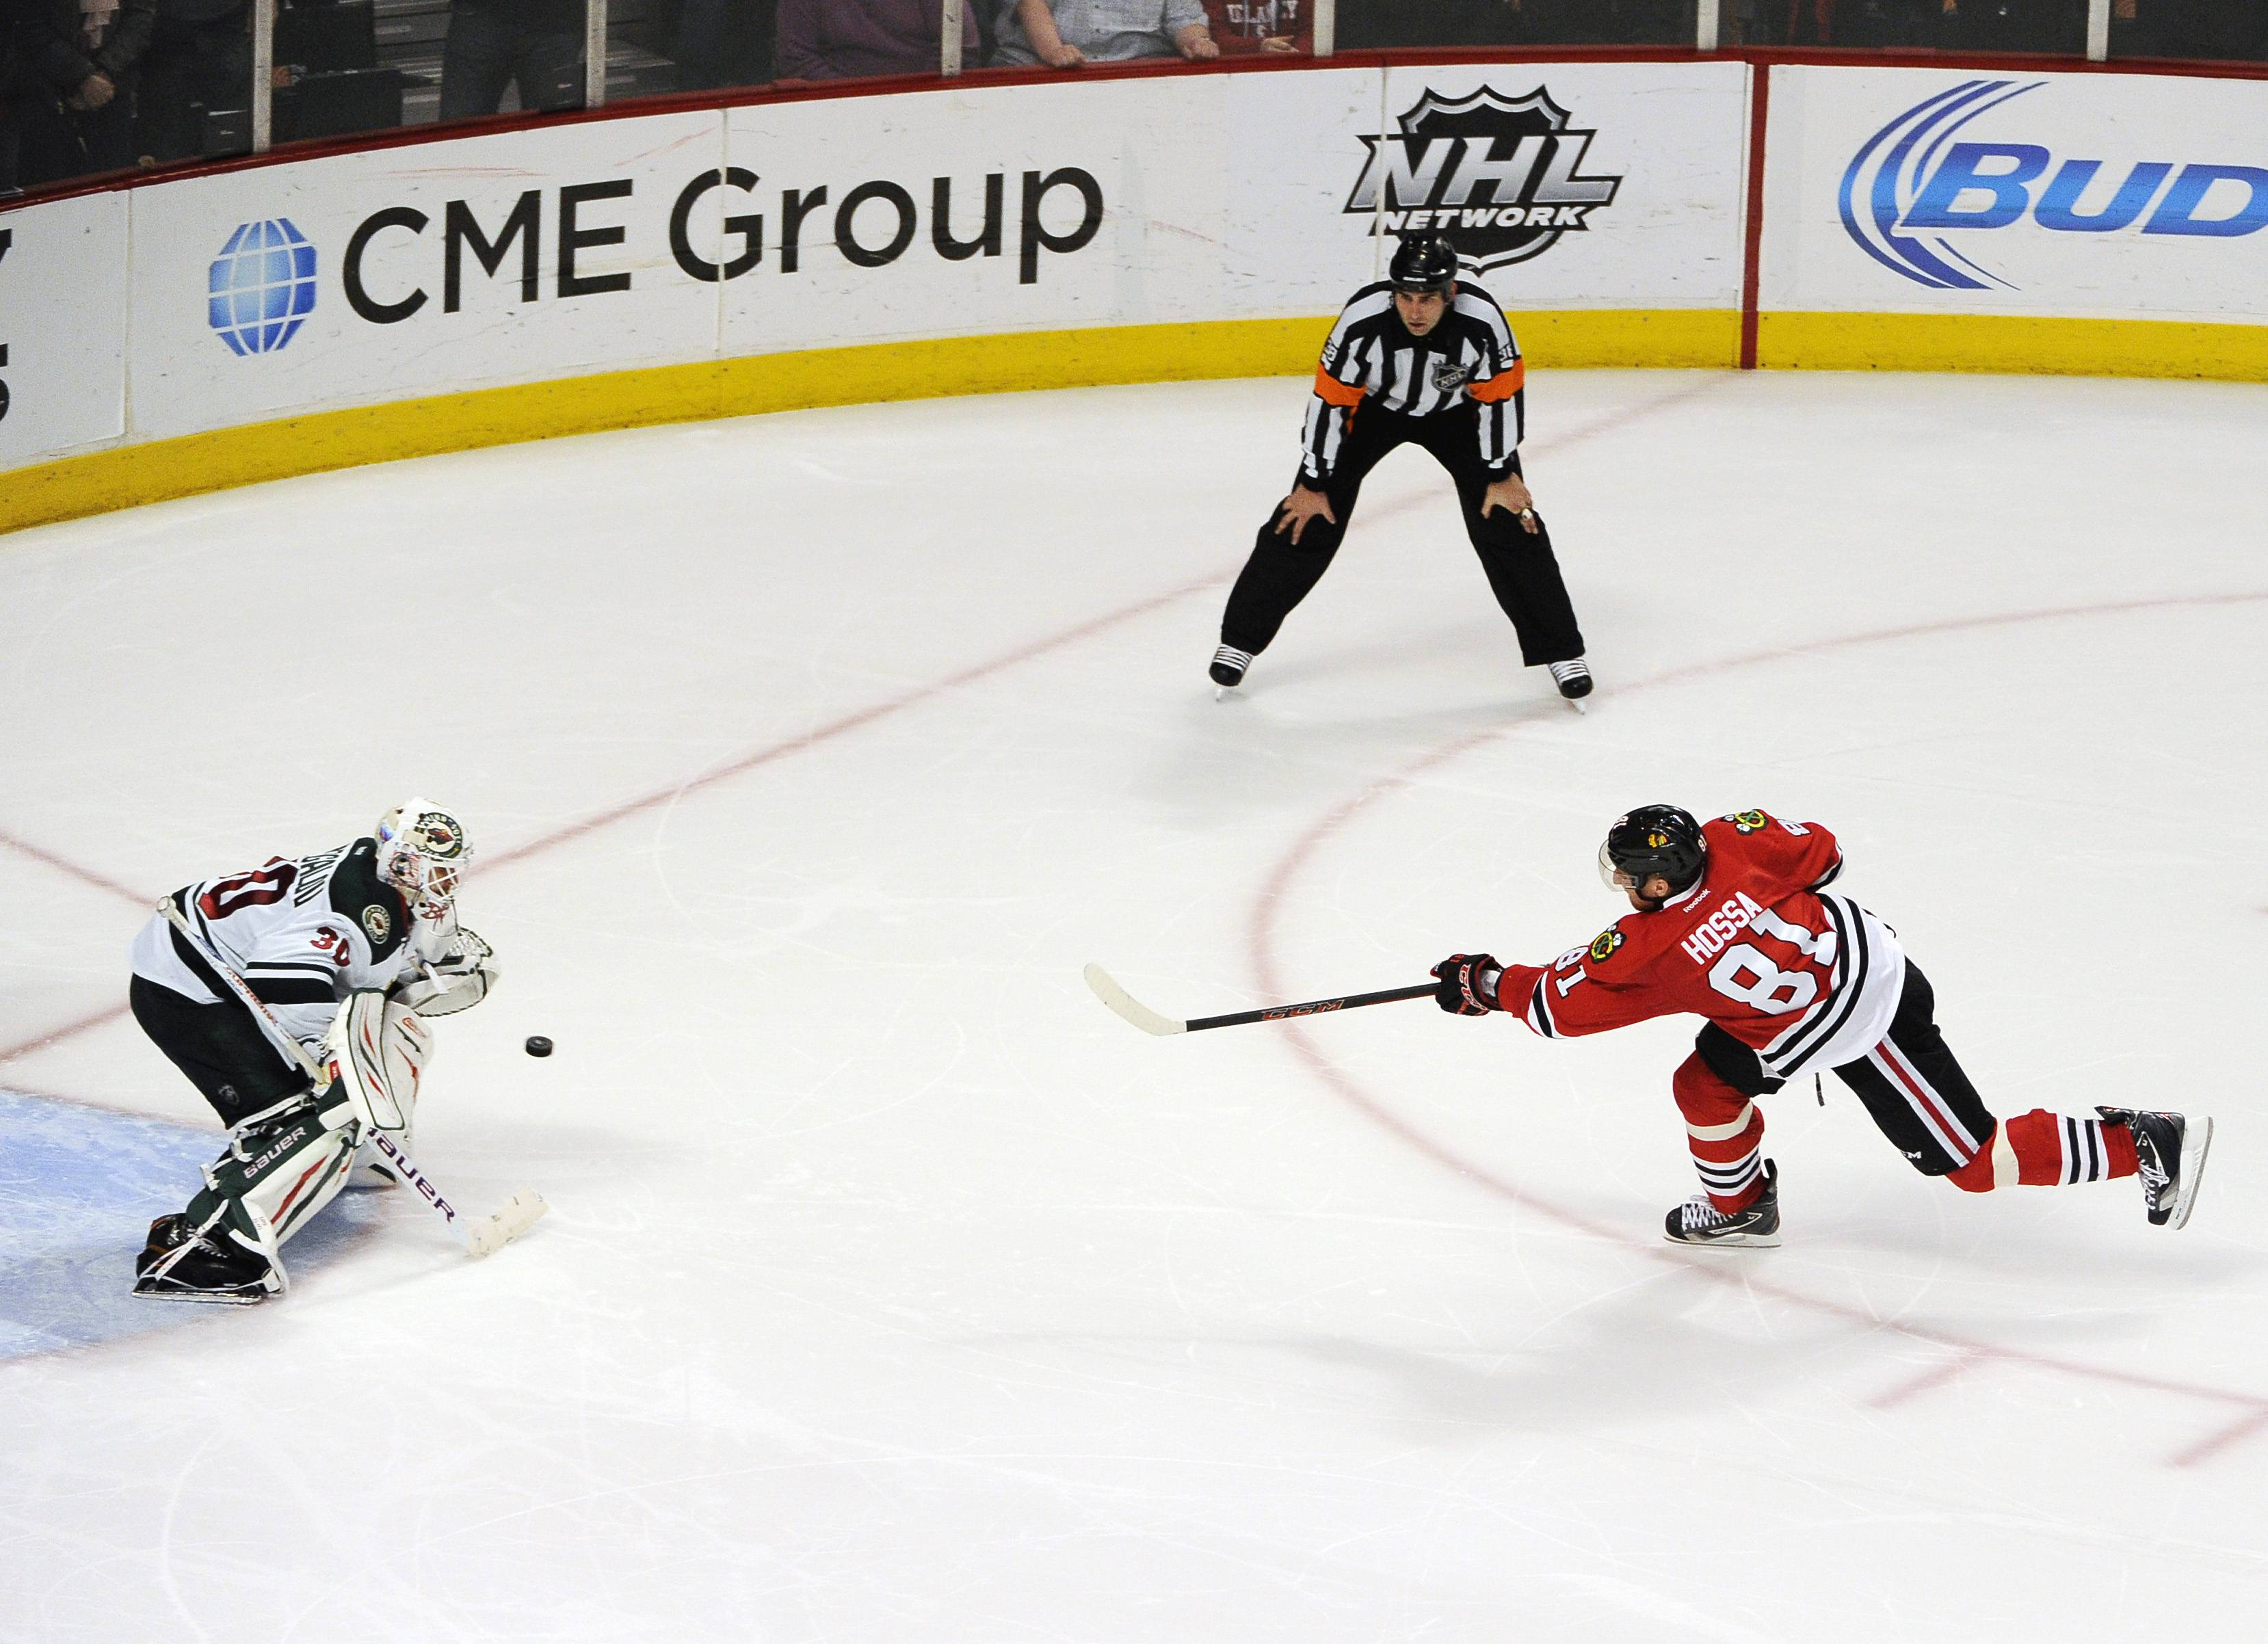 Blackhawks' Marian Hossa (81) scores the game winning goal on Minnesota Wild goalie Ilya Bryzgalov in a shootout during an NHL hockey game in Chicago, Thursday, April 3, 2014. The Blackhawks won 3-2.